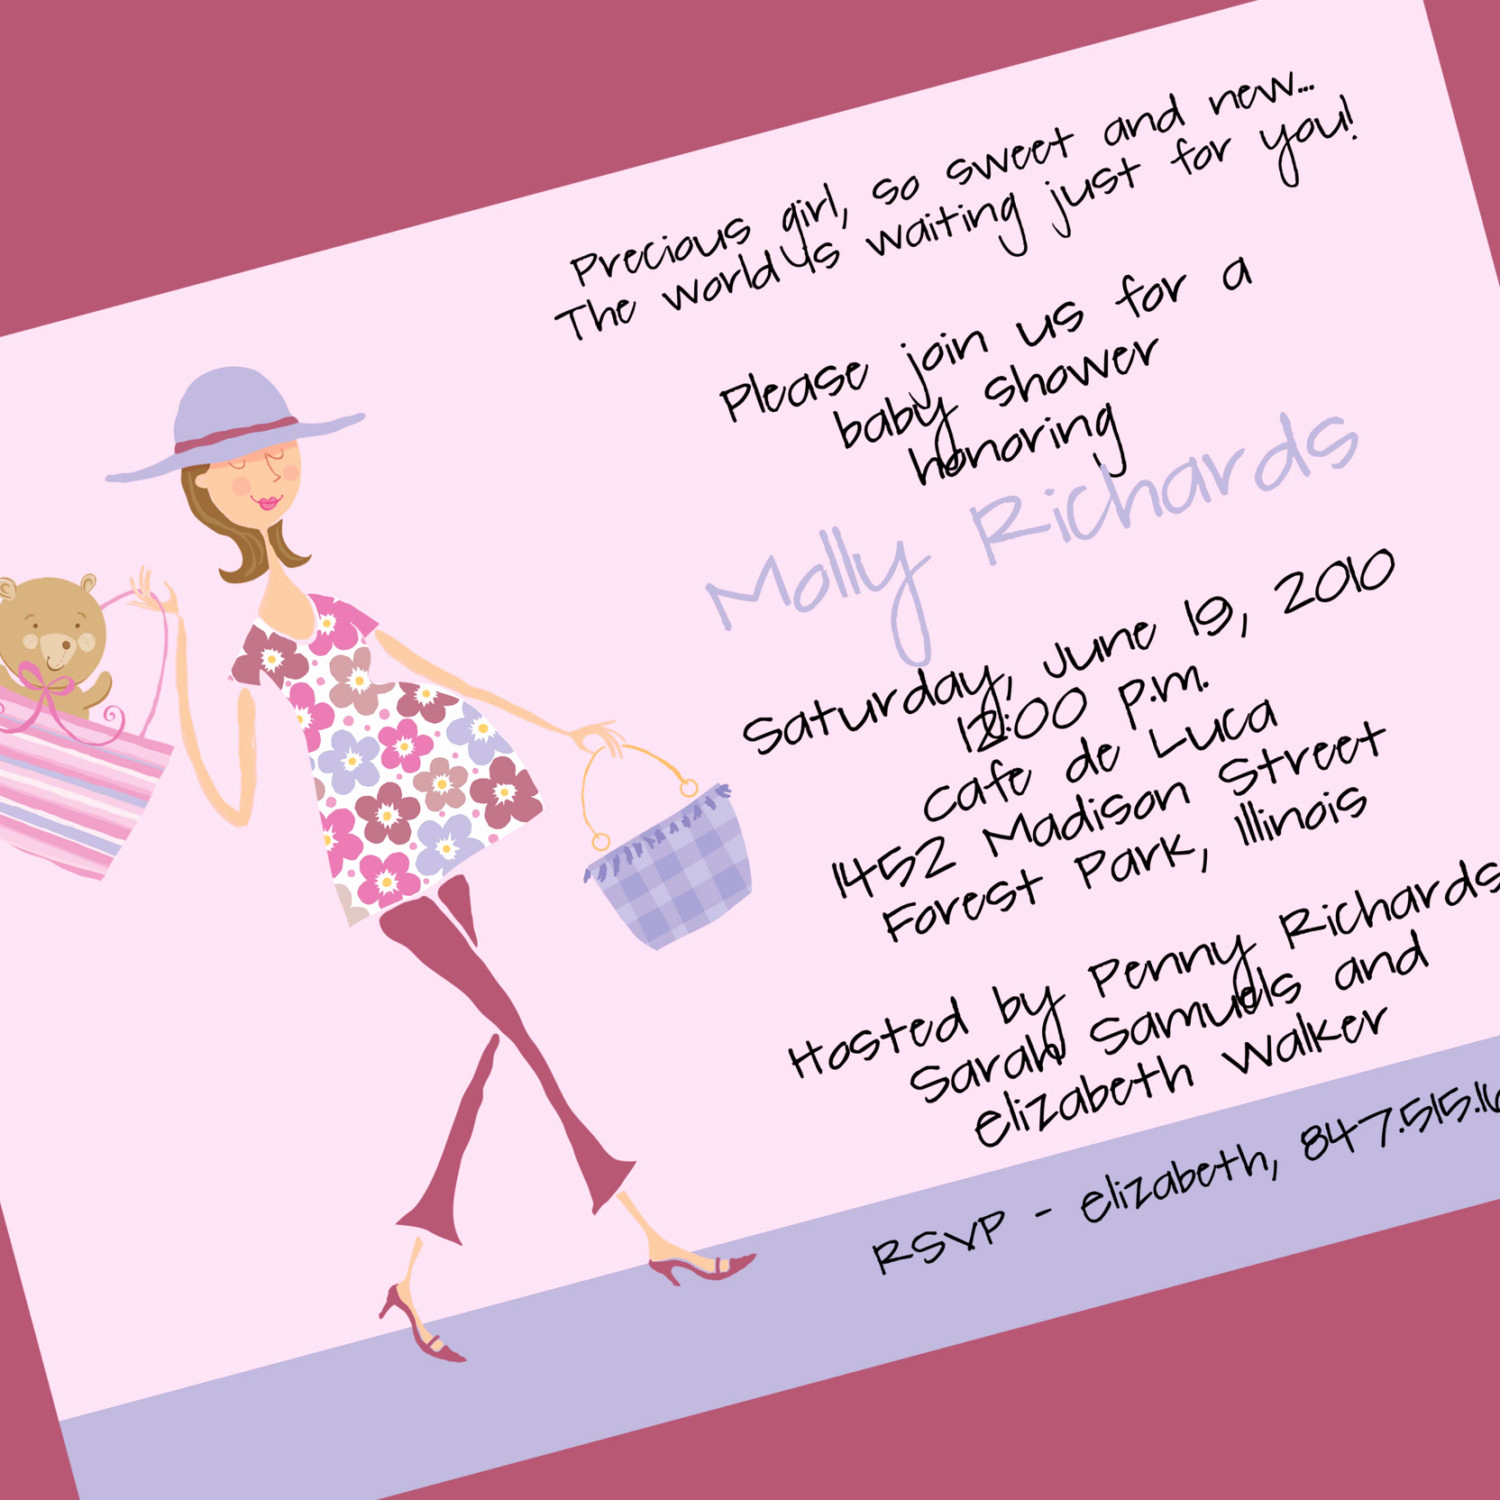 Invitation Quotes for Party Fresh Party Invitation Quotes Cards Image Quotes at Hippoquotes